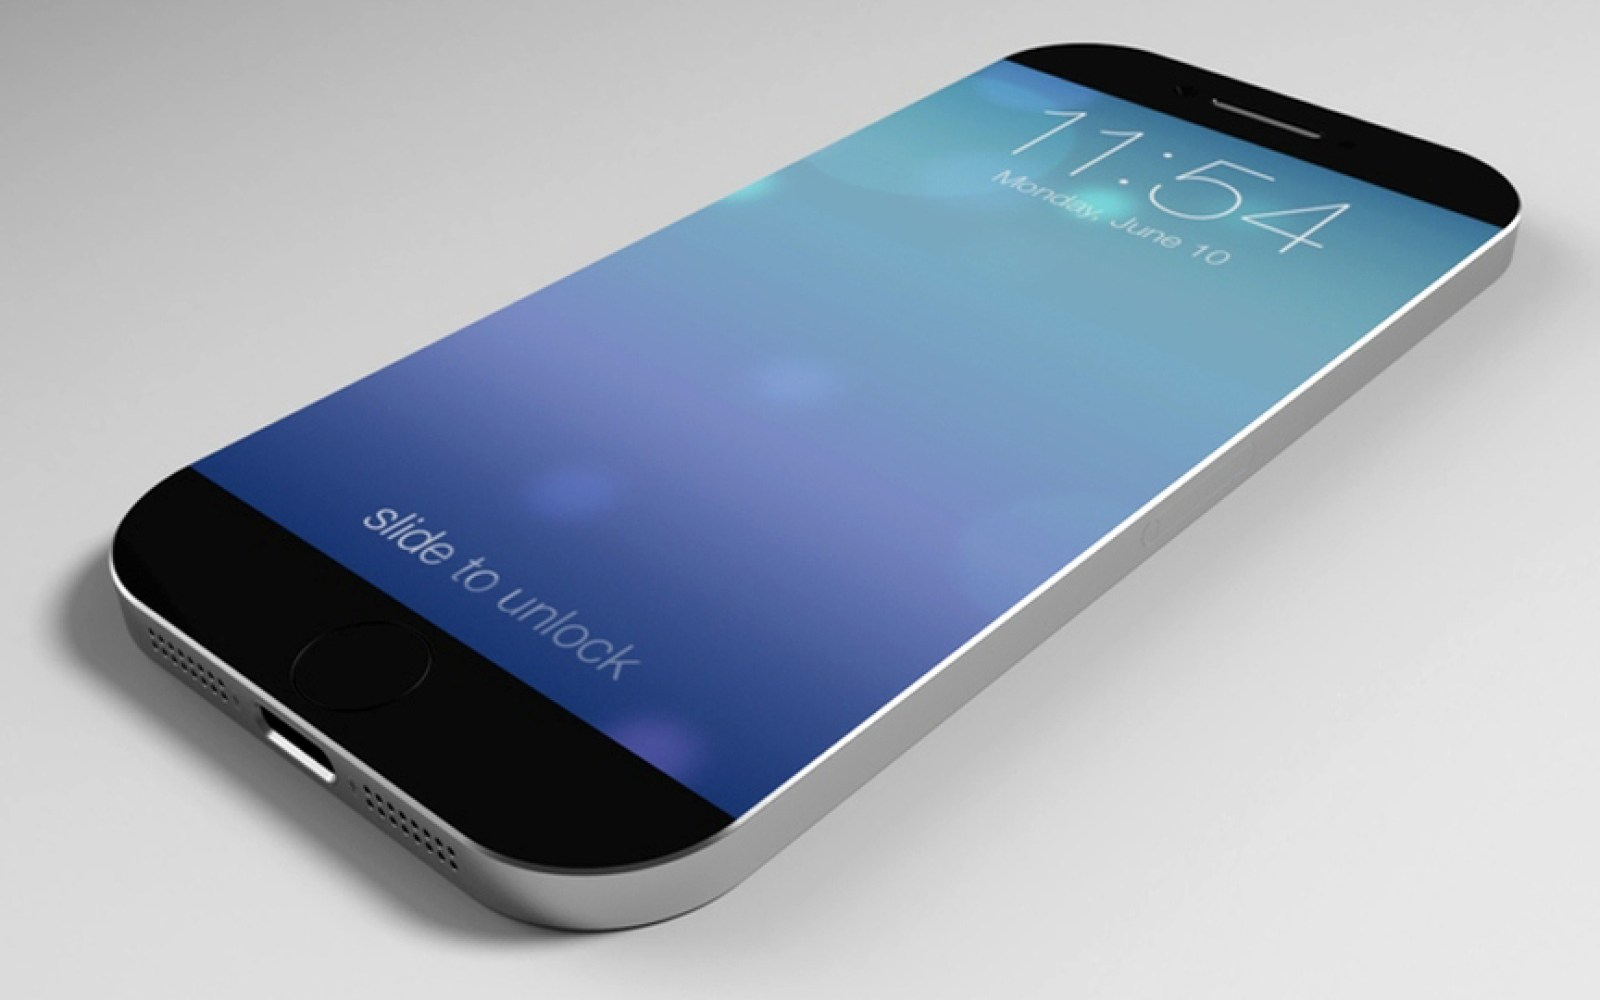 Opinion: What approach will Apple take to deliver a larger-screen iPhone 6?